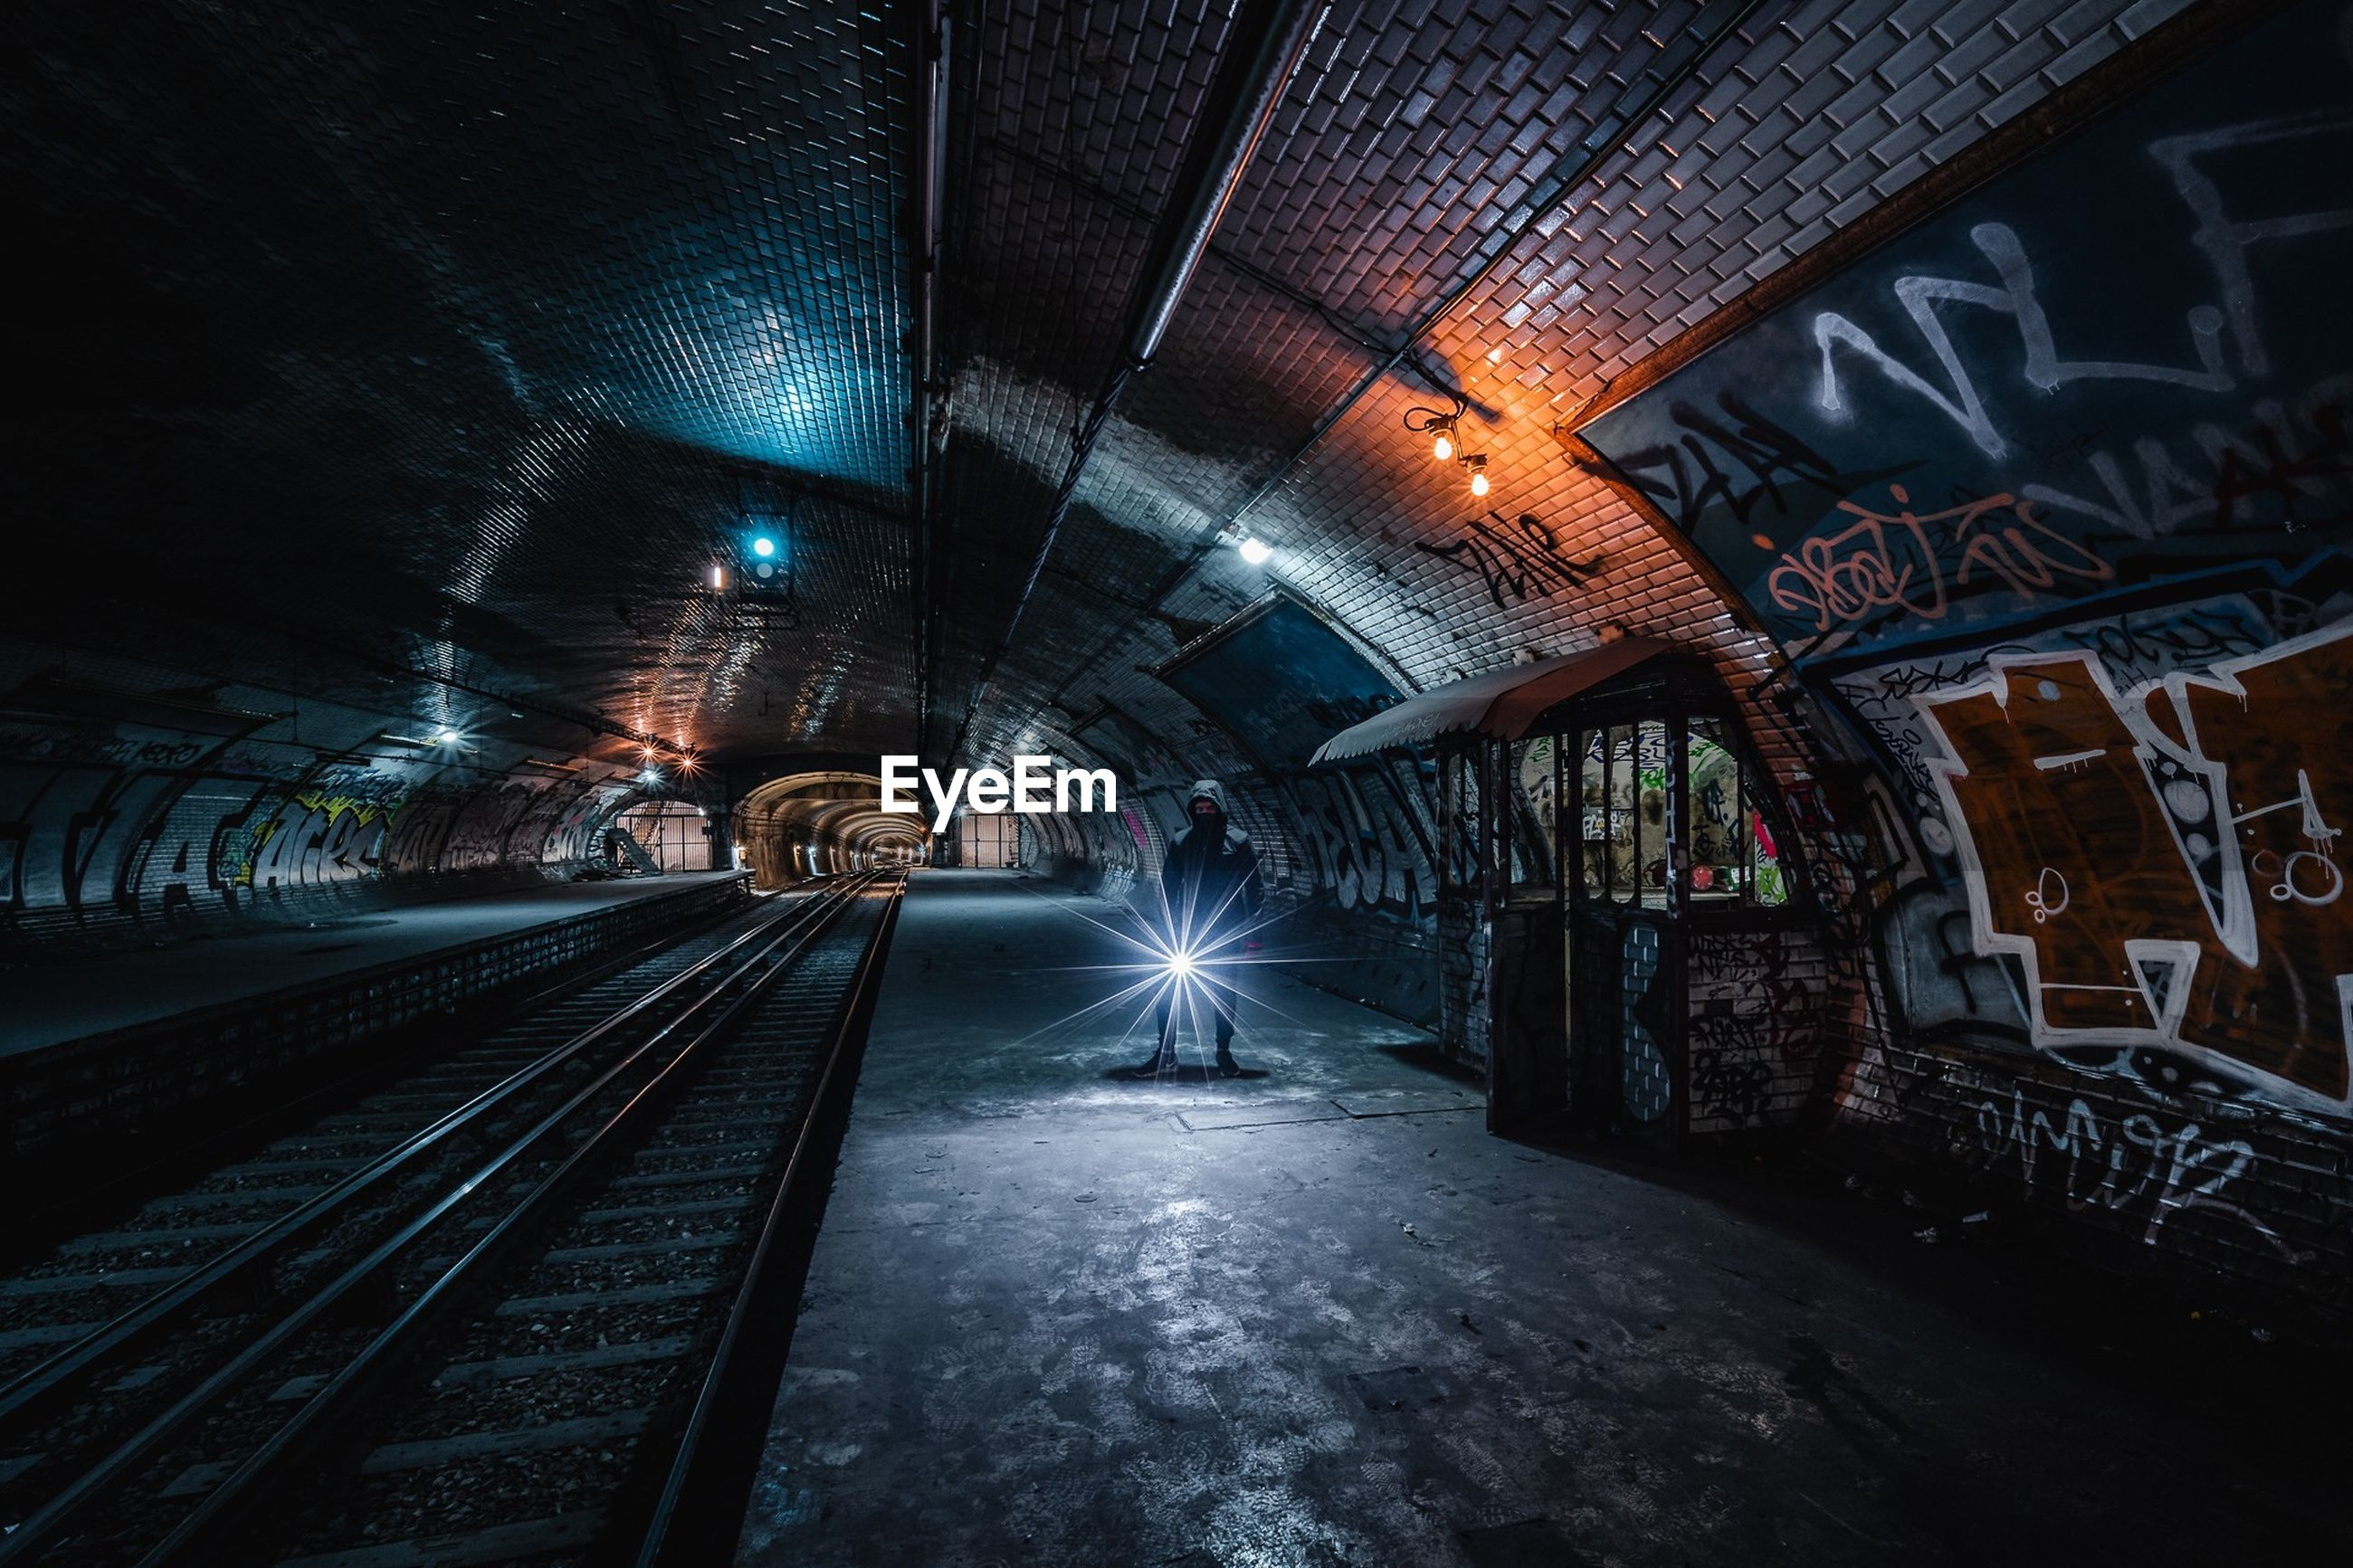 illuminated, architecture, transportation, tunnel, built structure, diminishing perspective, indoors, no people, the way forward, direction, lighting equipment, track, rail transportation, mode of transportation, public transportation, railroad track, graffiti, vanishing point, night, subway, ceiling, light at the end of the tunnel, long